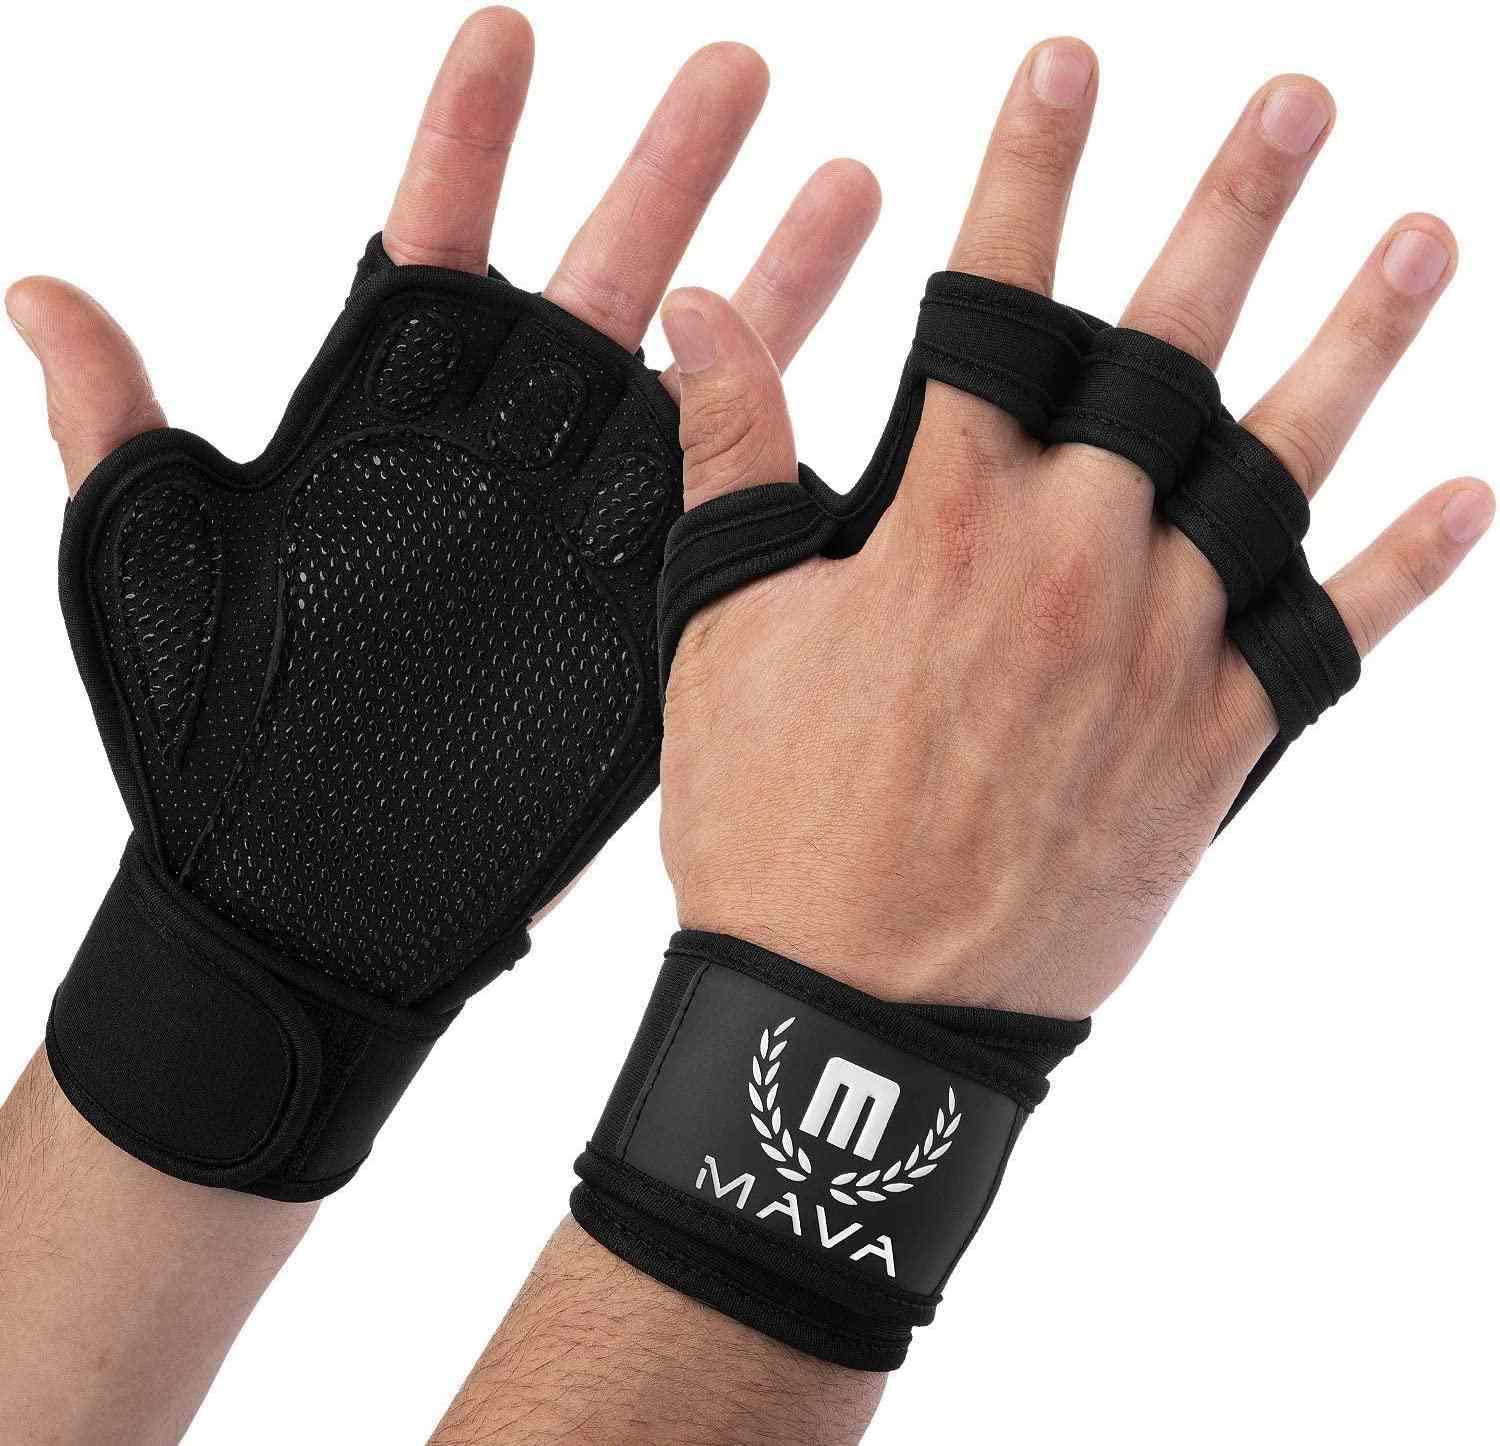 Mava Sports Ventilated Workout Gloves with Integrated Wrist Wraps